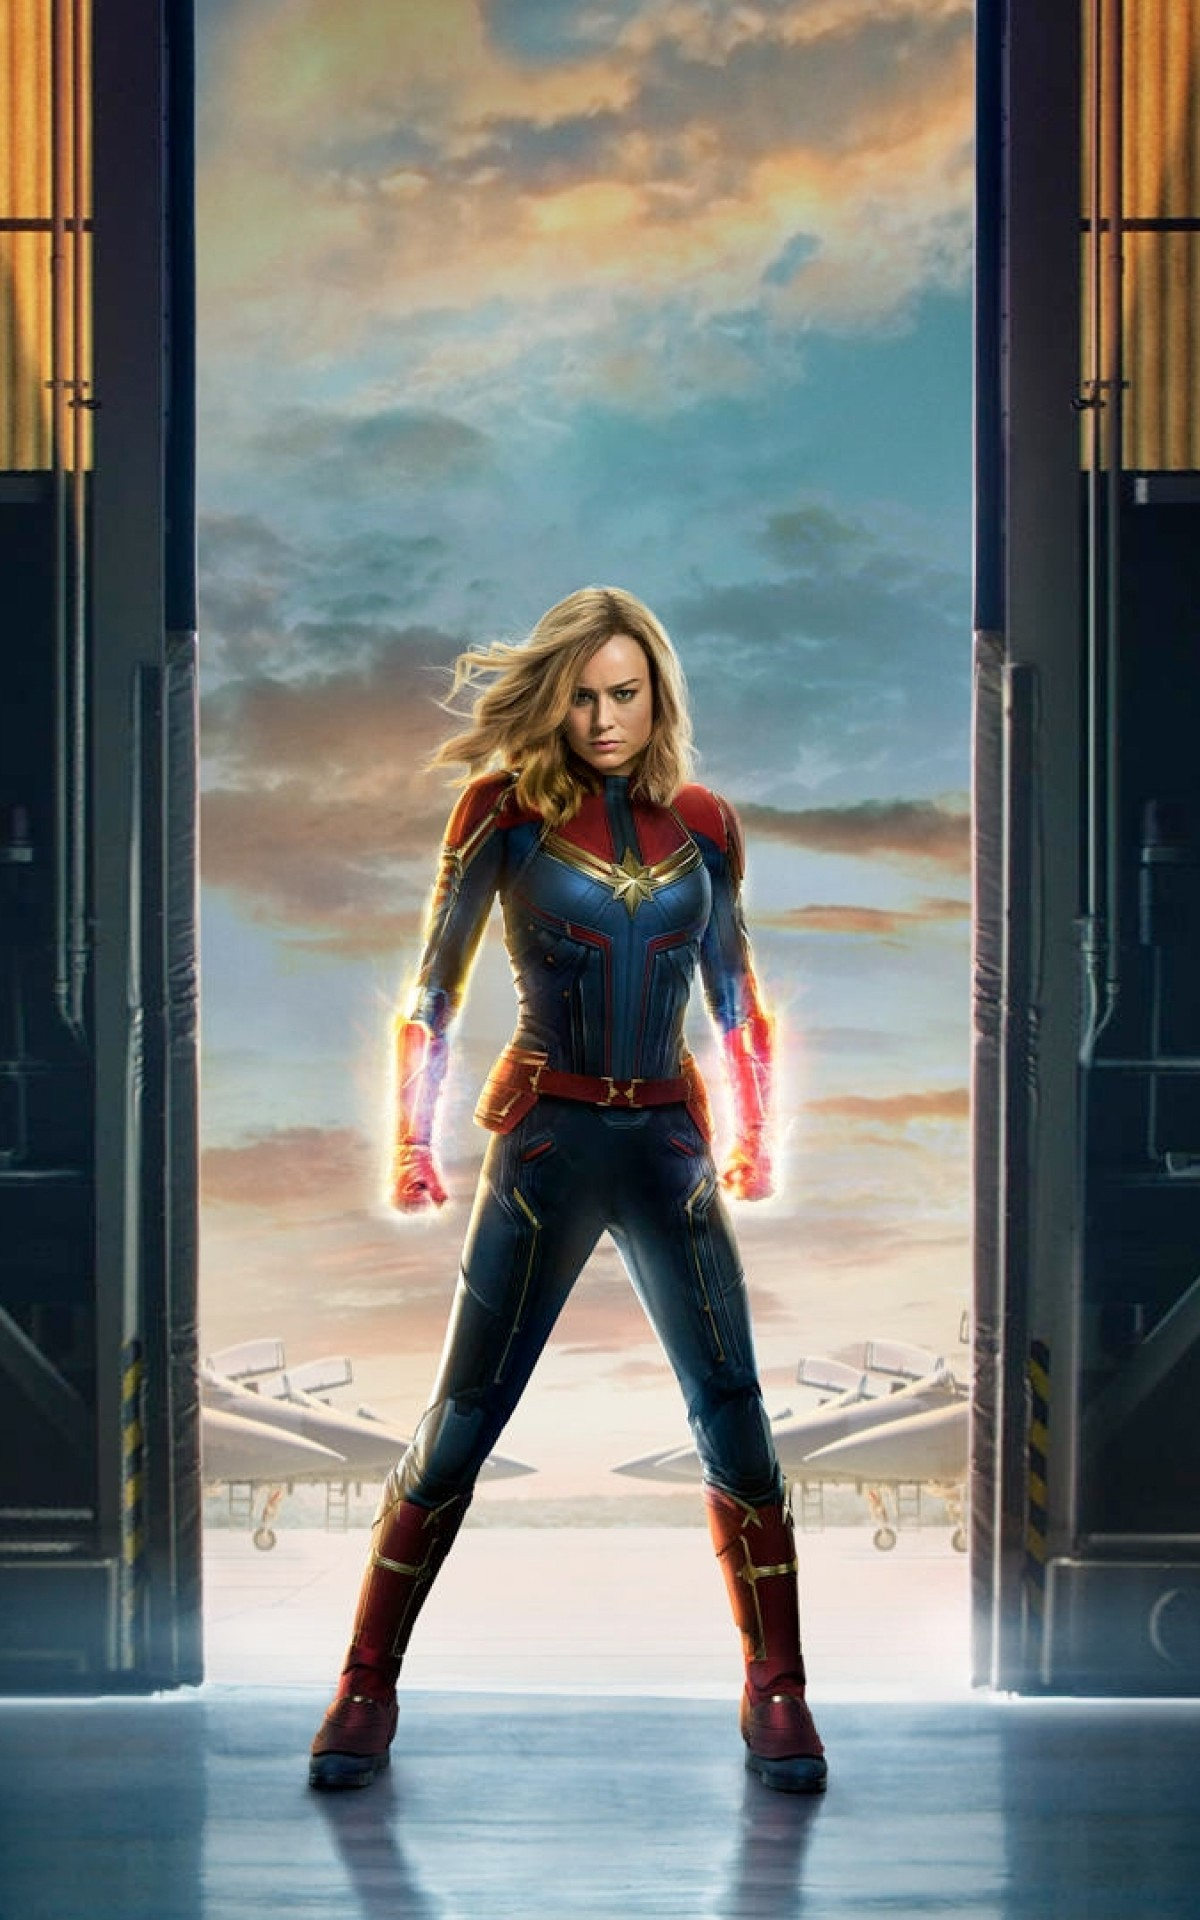 Download 1200x1920 Captain Marvel Brie Larson Wallpapers for Asus 1200x1920